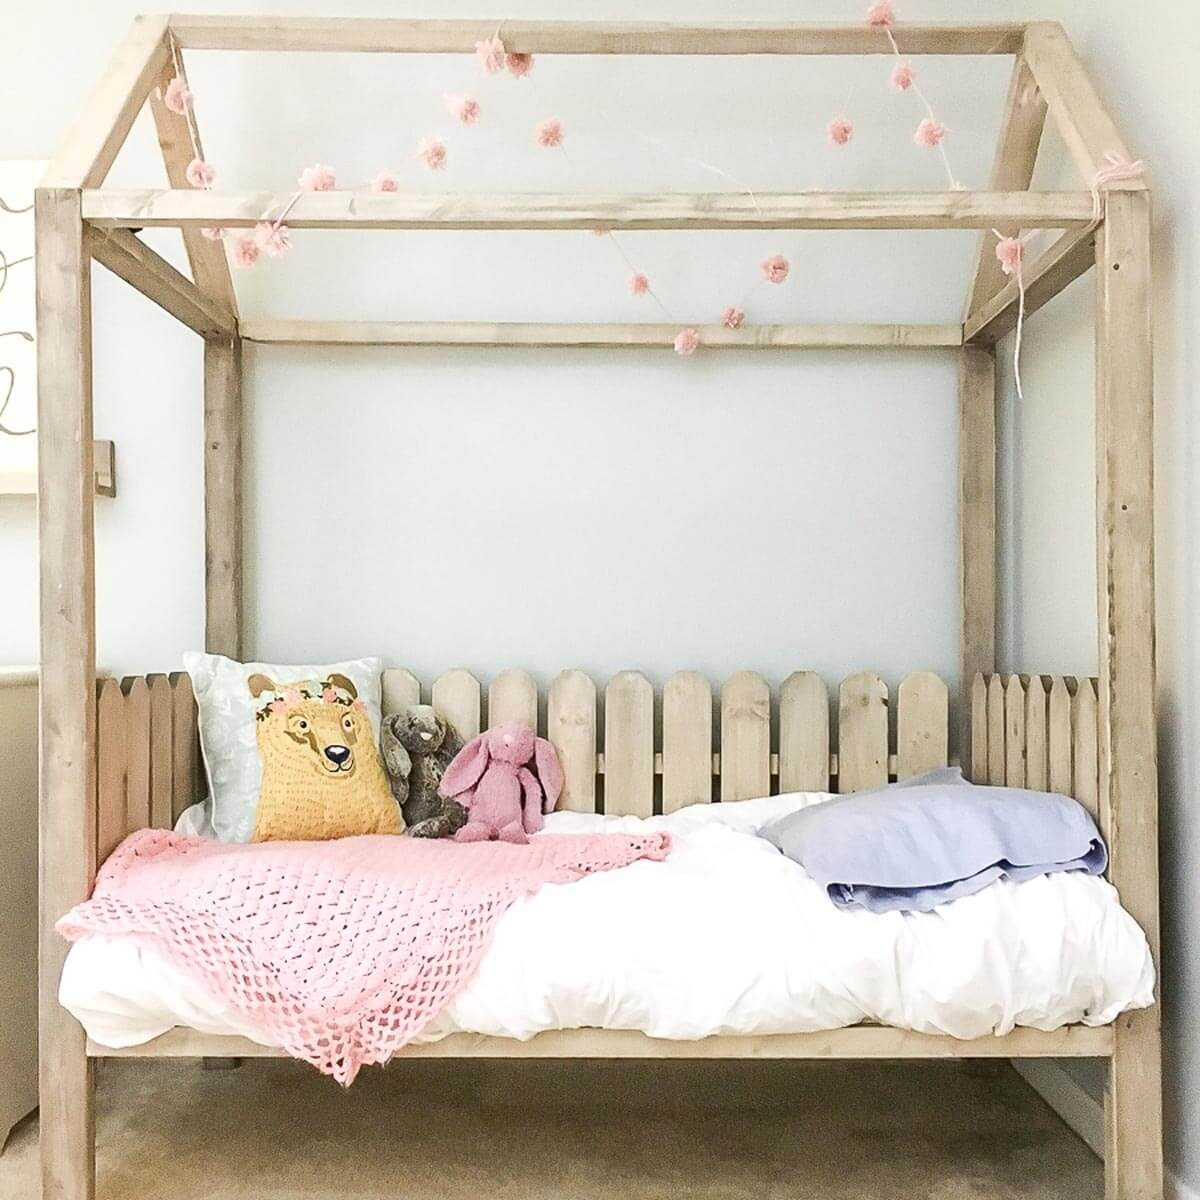 11 Great DIY Bed Frame Plans and Ideas — The Family Handyman